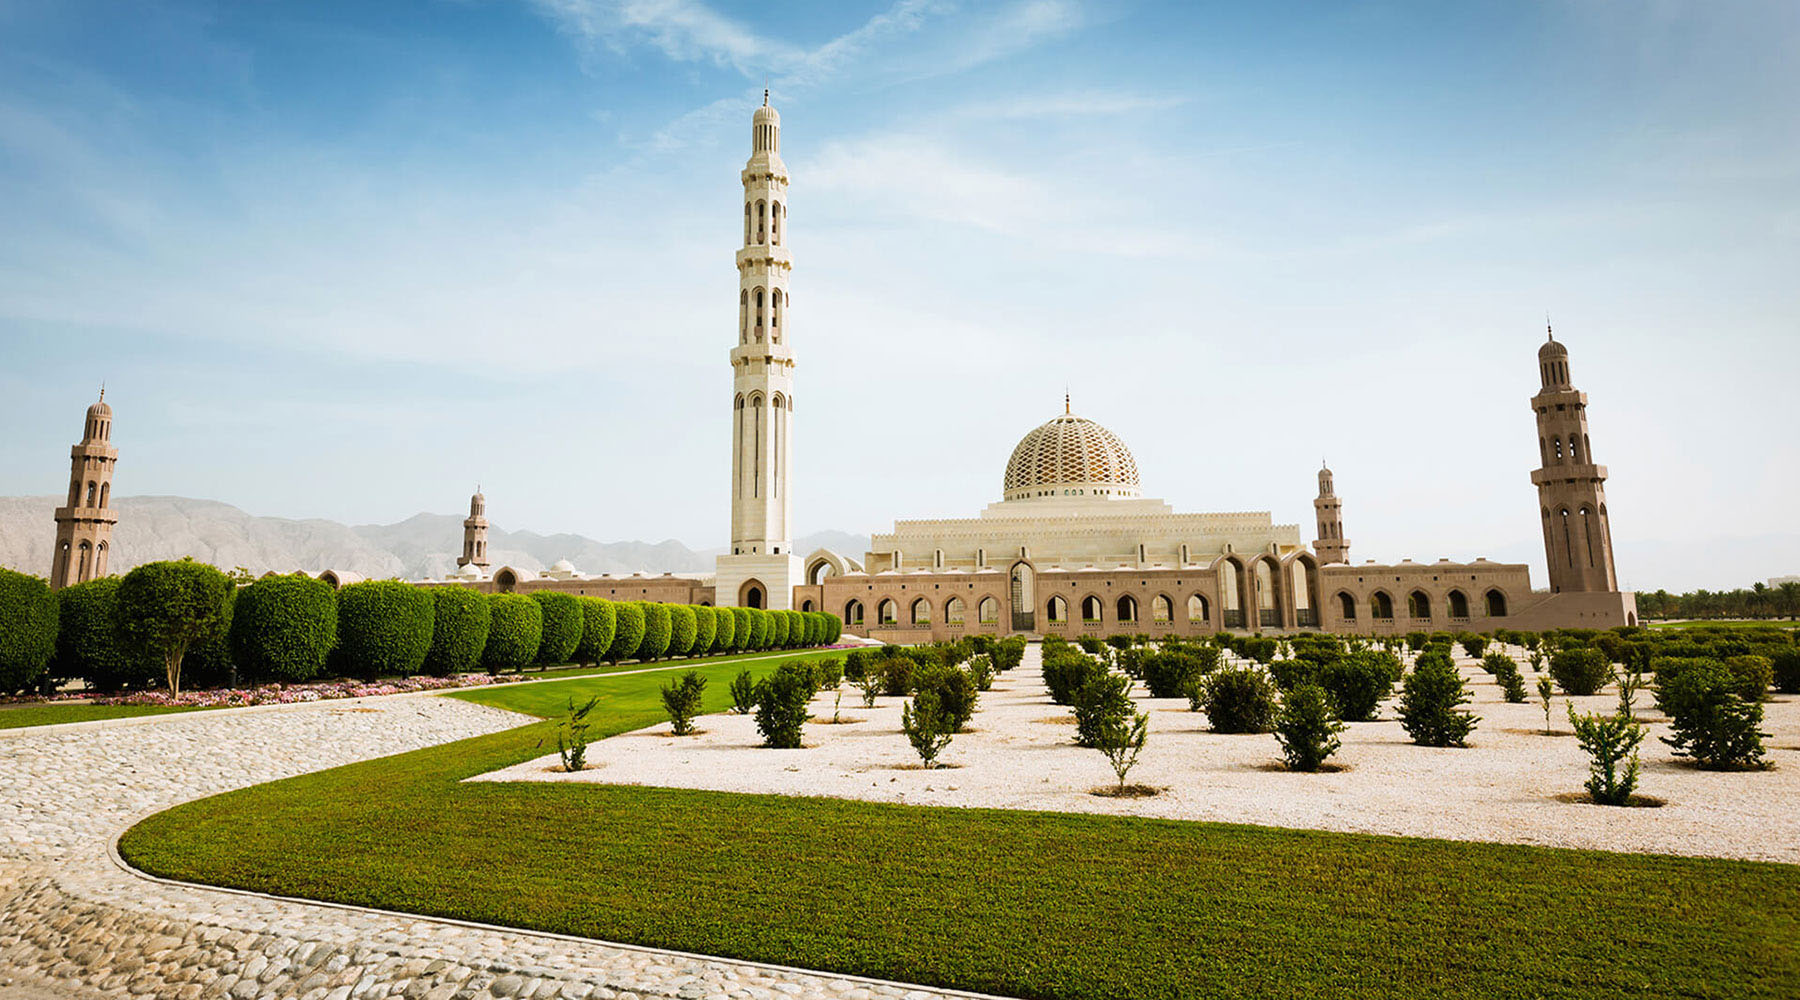 11-NIGHT ARABIA & INDIA HOLIDAY VOYAGE